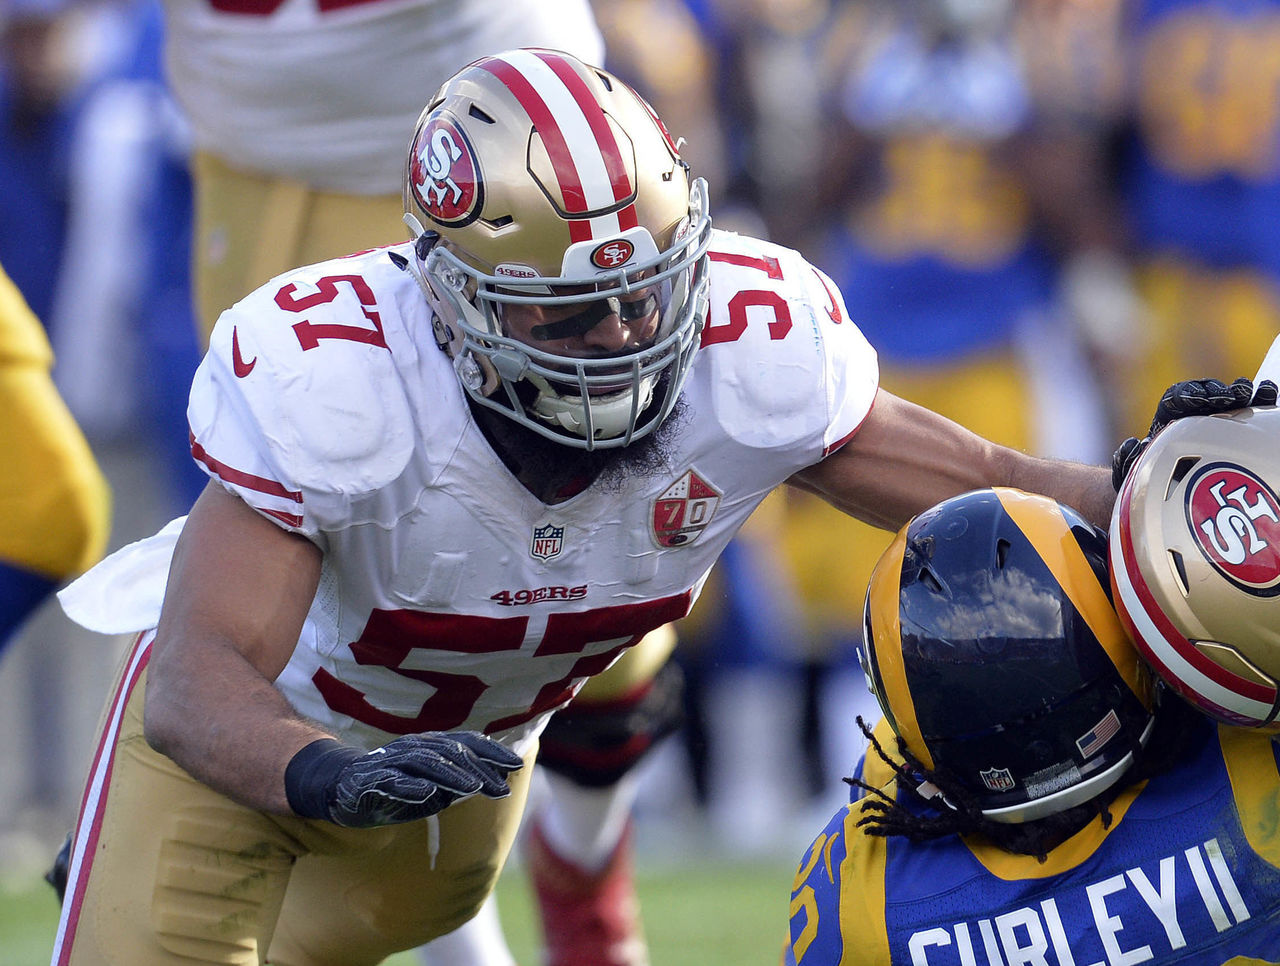 Cropped 2016 12 24t230255z 1982306780 nocid rtrmadp 3 nfl san francisco 49ers at los angeles rams